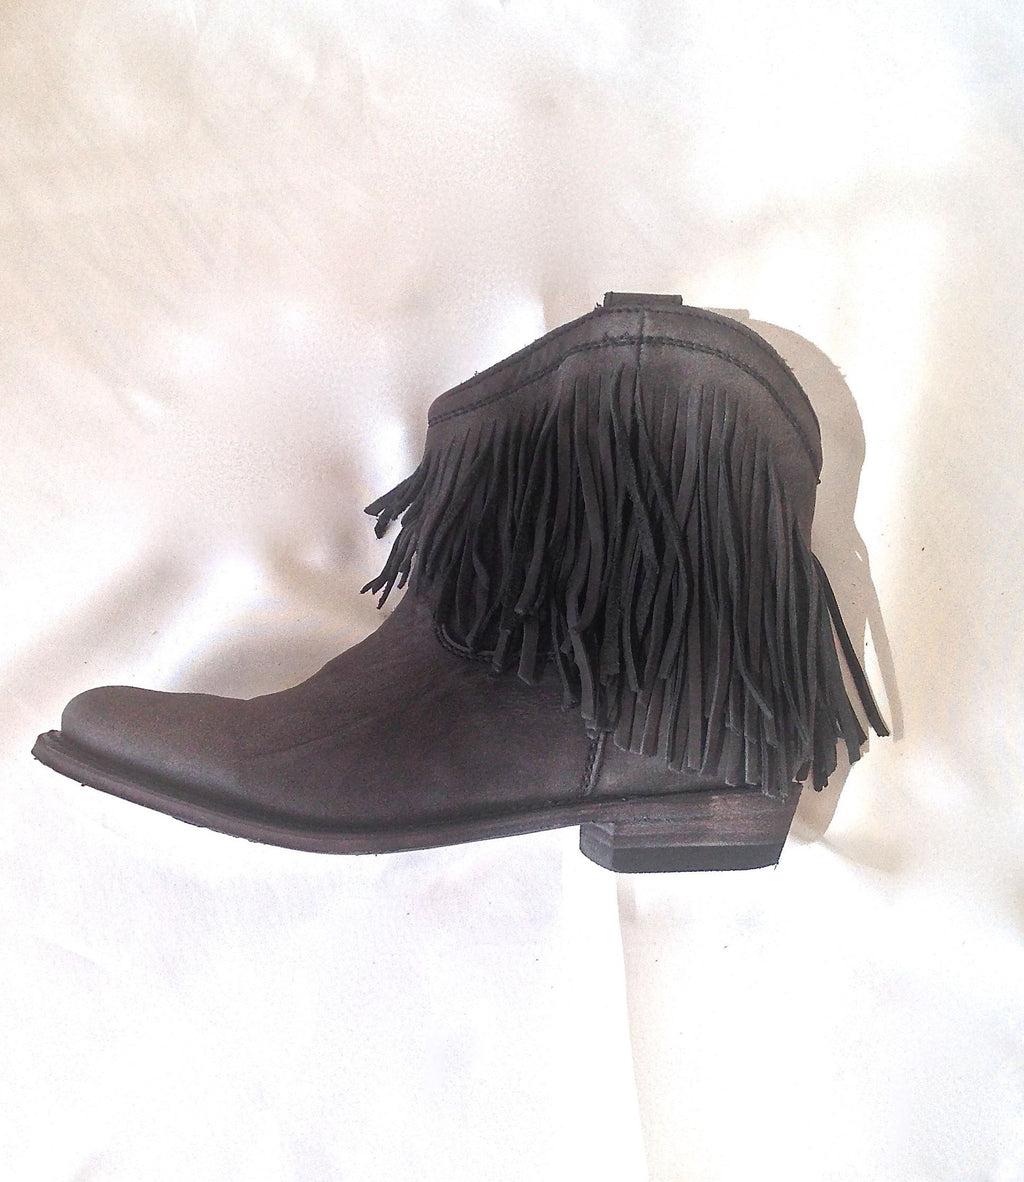 Gypset Boot In Black Forest - 100% Leather & Entirely Handmade